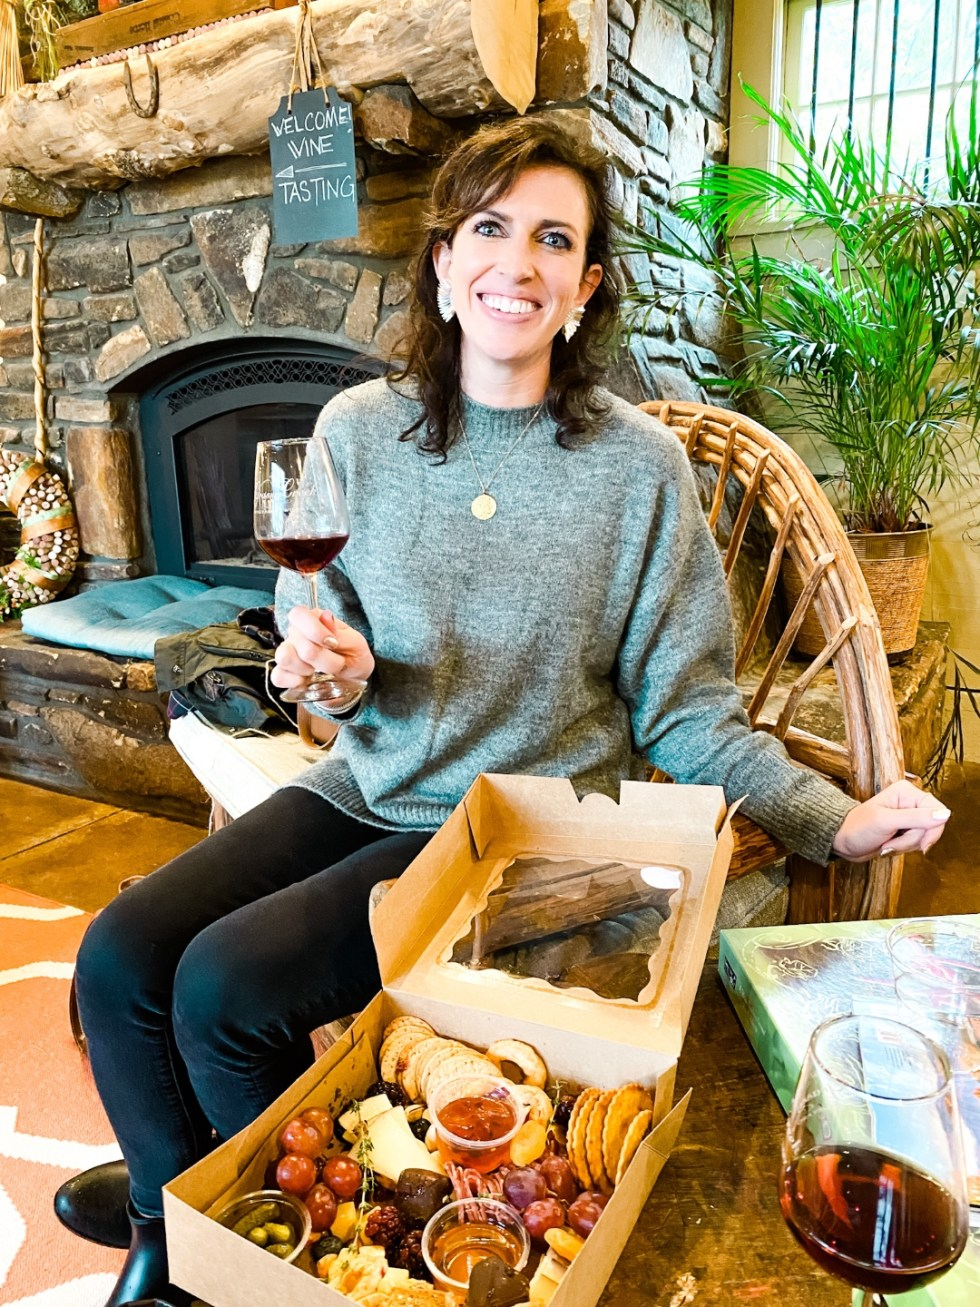 Western NC Wineries: 6 Wineries to Visit During your Next Girls' Weekend - I'm Fixin' To - @mbg0112 |Western NC Wineries by popular NC blog, I'm Fixin' To: image of a woman at Grassy Creek vineyard and Winery.